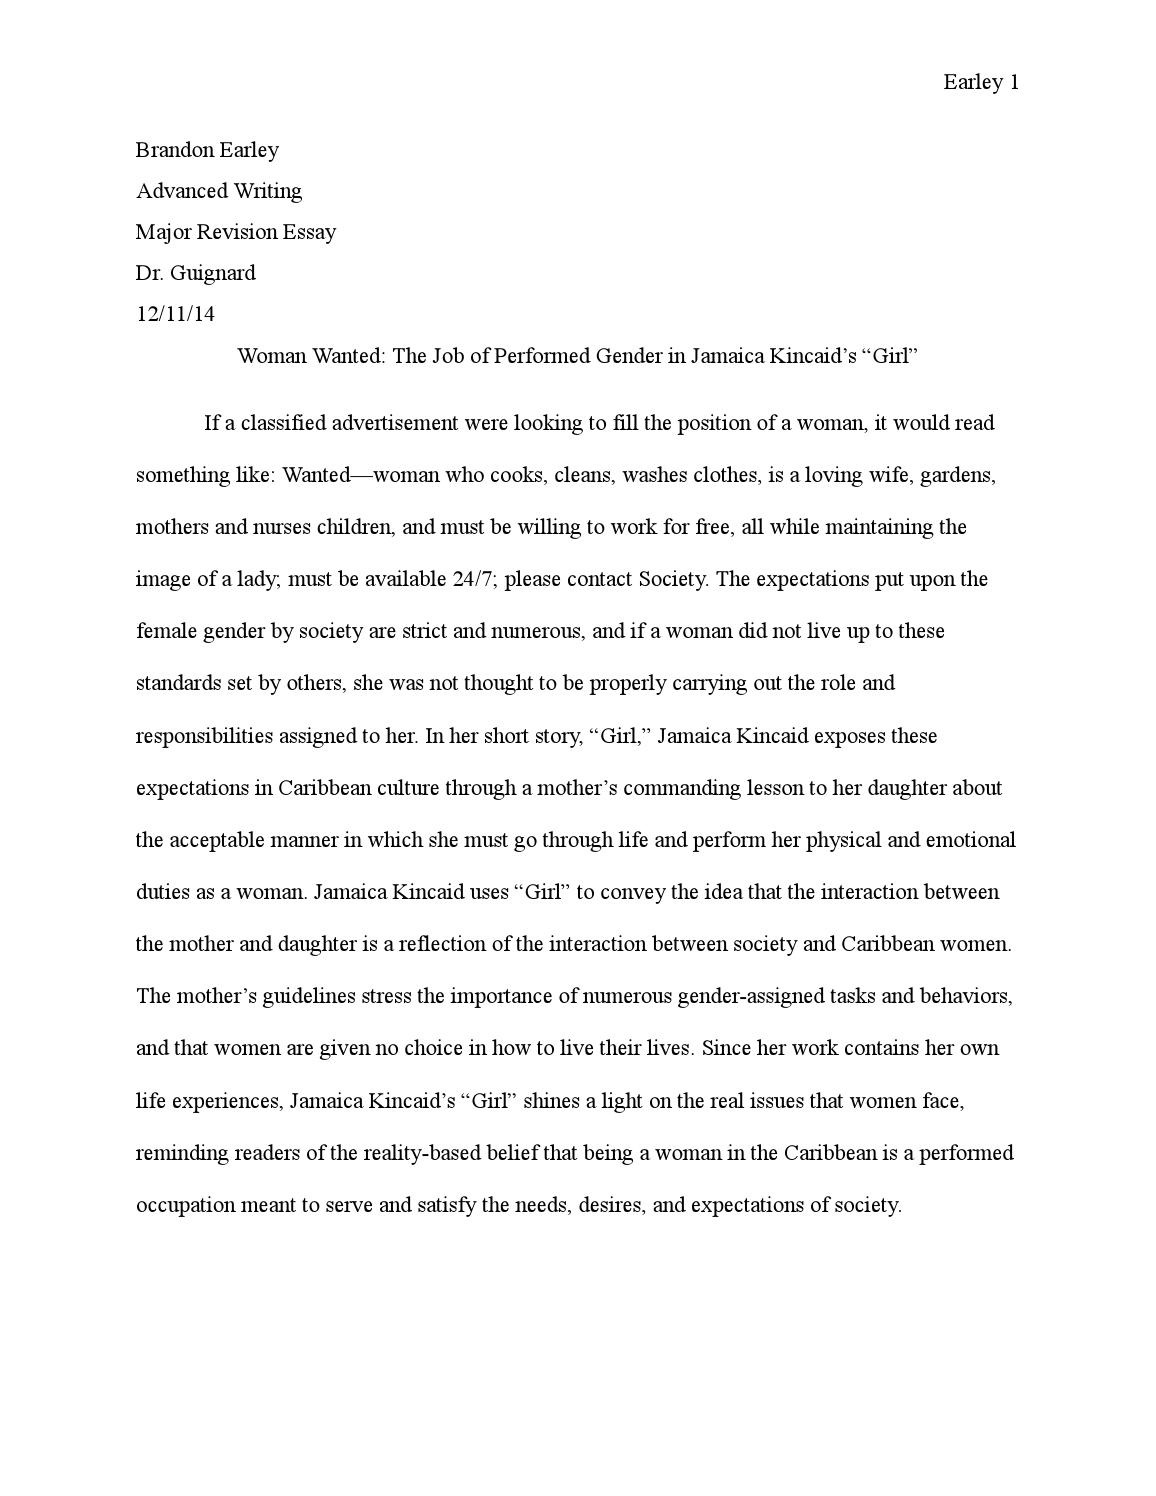 Thesis For Compare Contrast Essay  Synthesis Essay Tips also Comparison Contrast Essay Example Paper Performing Gender In Jamaica Kincaids By Brandon Earley  Issuu Business Essay Sample